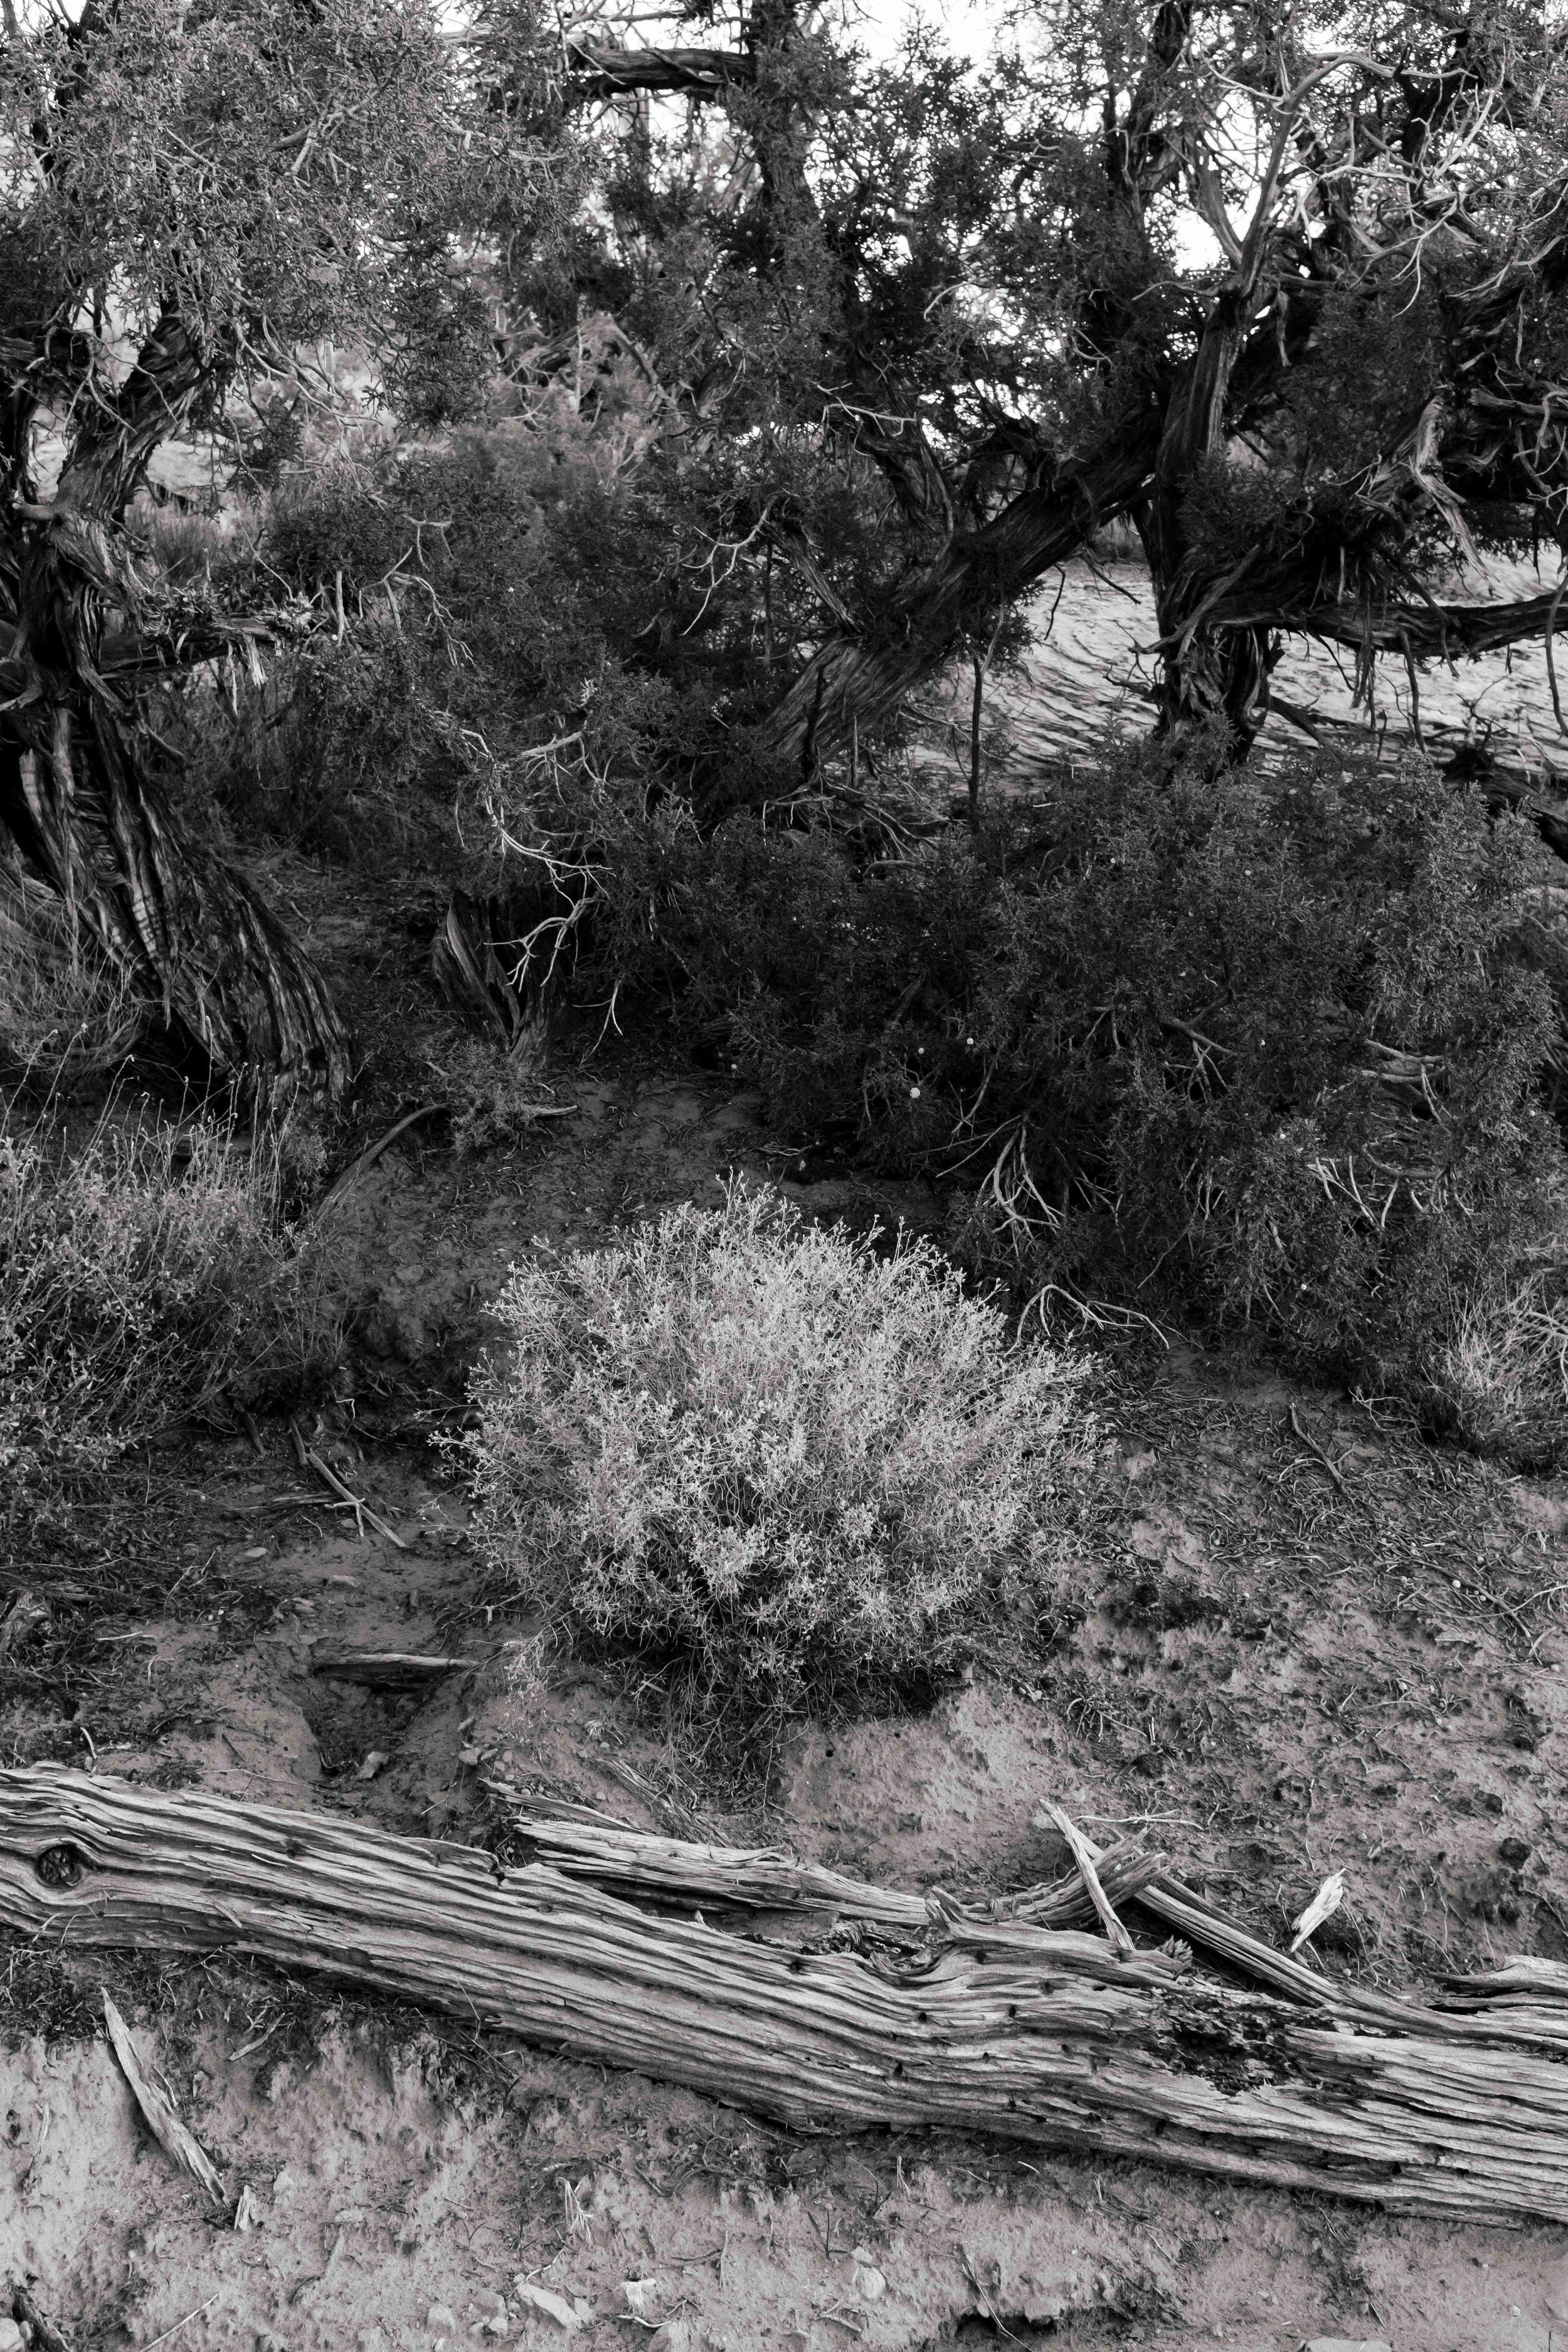 Desert shrubbery among juniper pines and dead branches. Fuji X100F